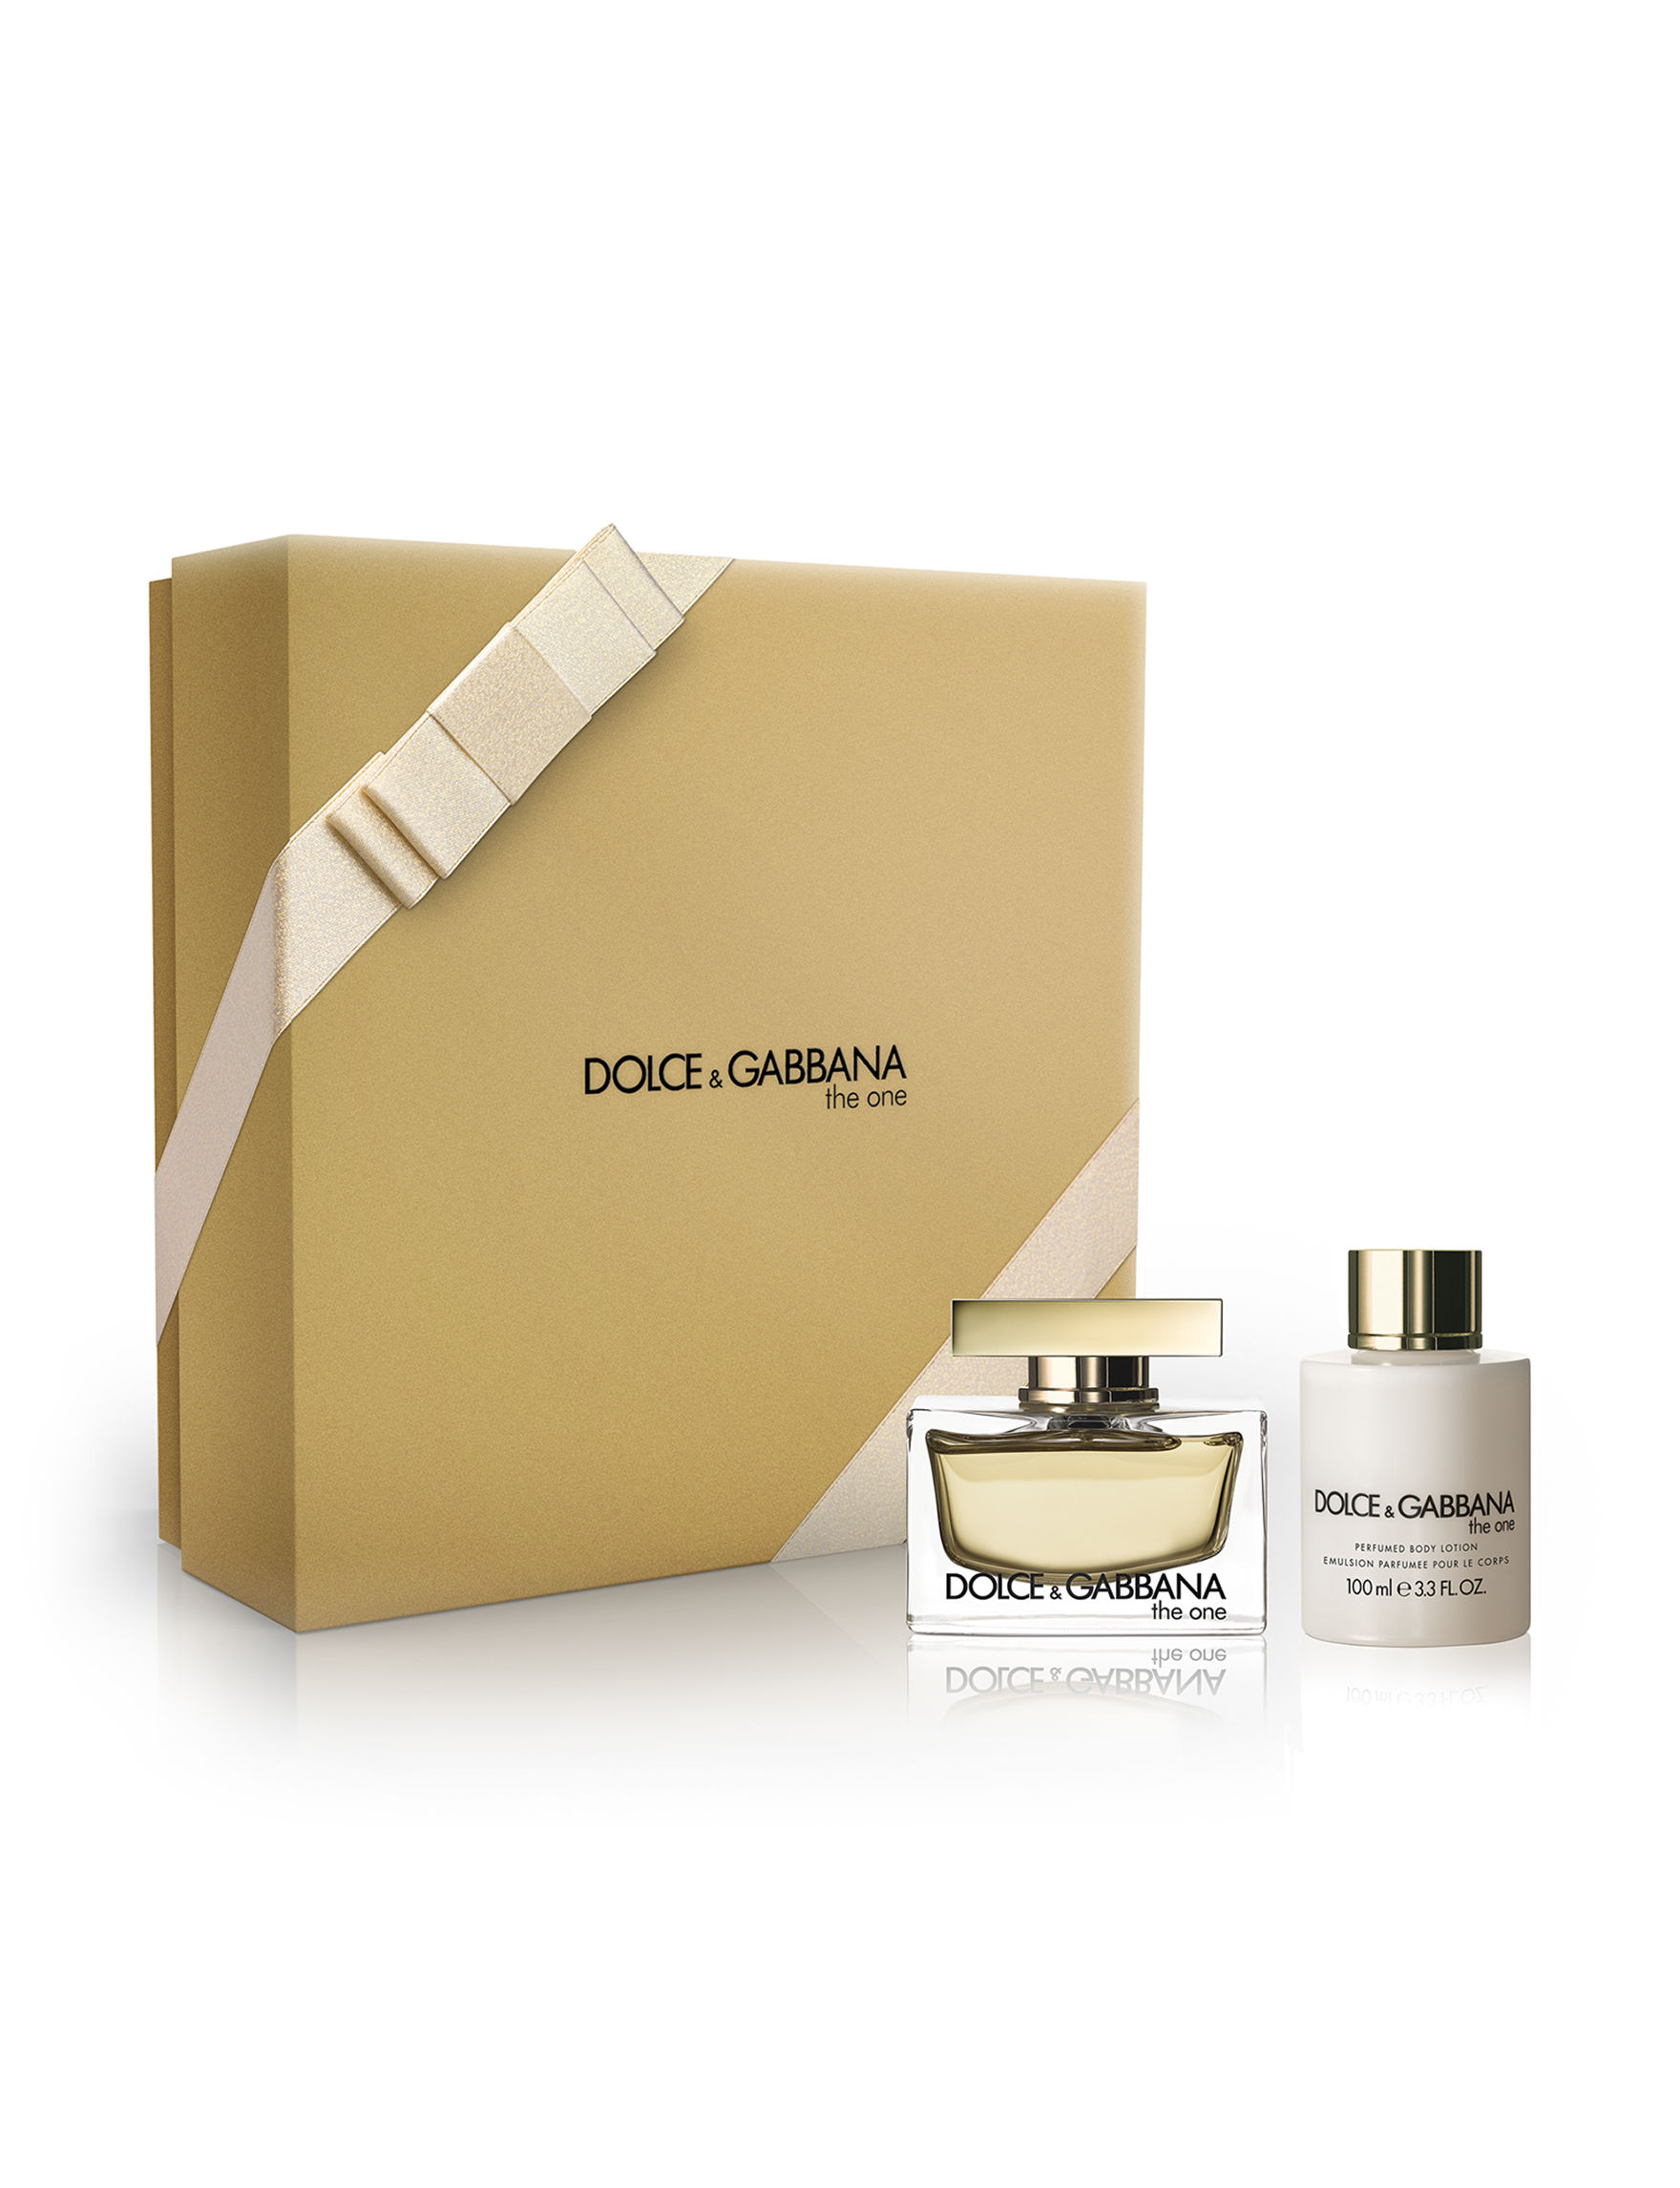 Dolce & Gabbana  Fragrance Gift Sets Perfumes